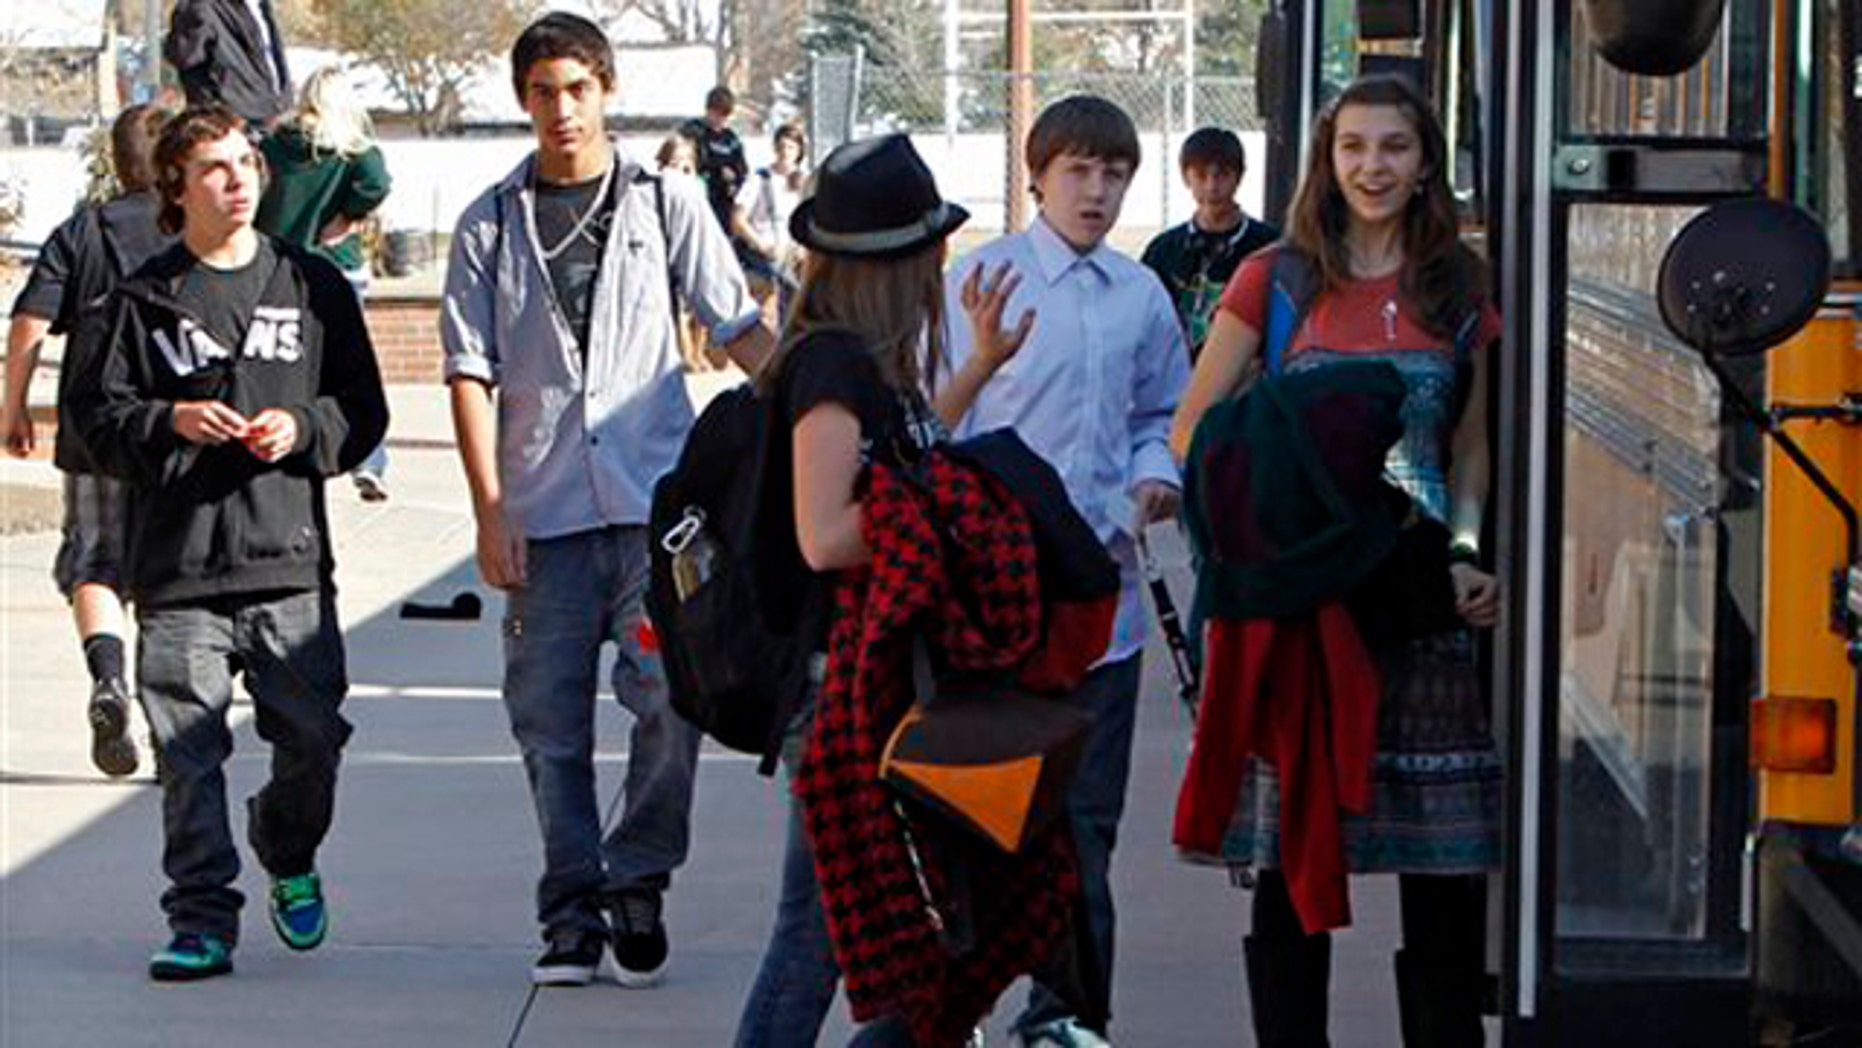 Oct. 28, 2011: Students at Carmody Middle School board buses after school in Lakewood, Colo. The only statewide tax vote on the ballot in the Nov. 2 election asked voters to pay more tax to support the school system.